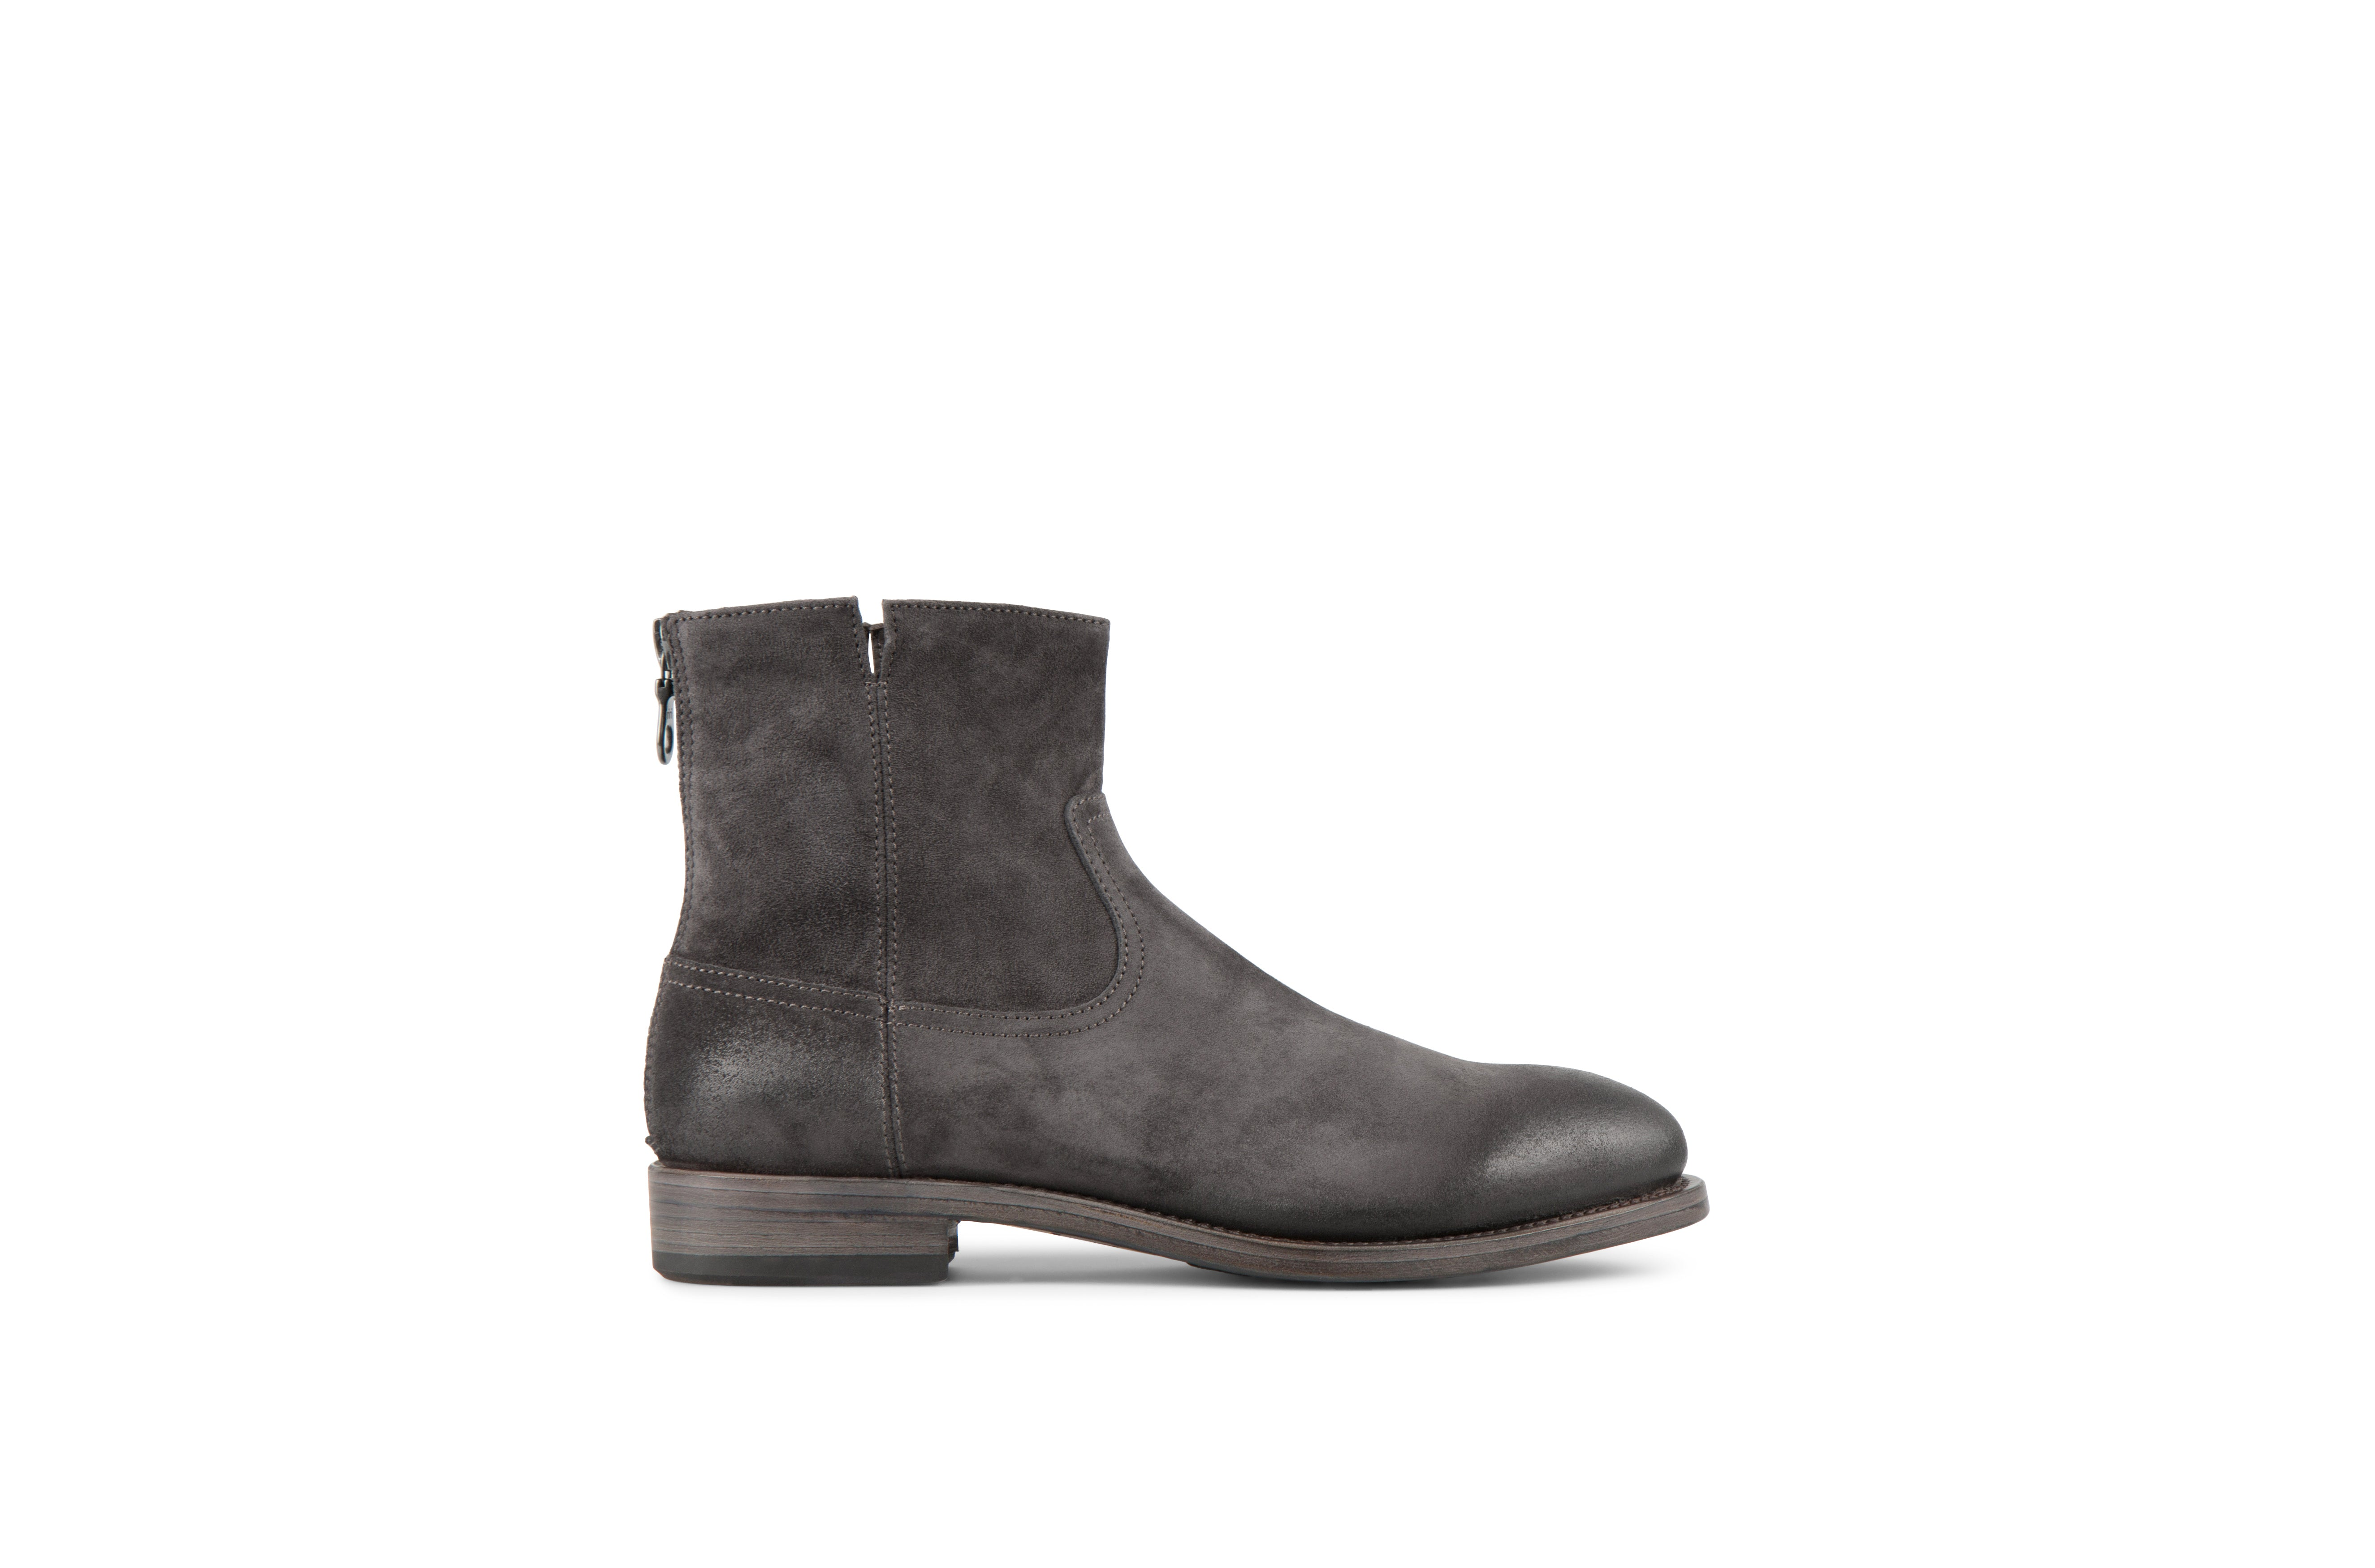 Flame Anthracite Suede Leather Zipper Boots